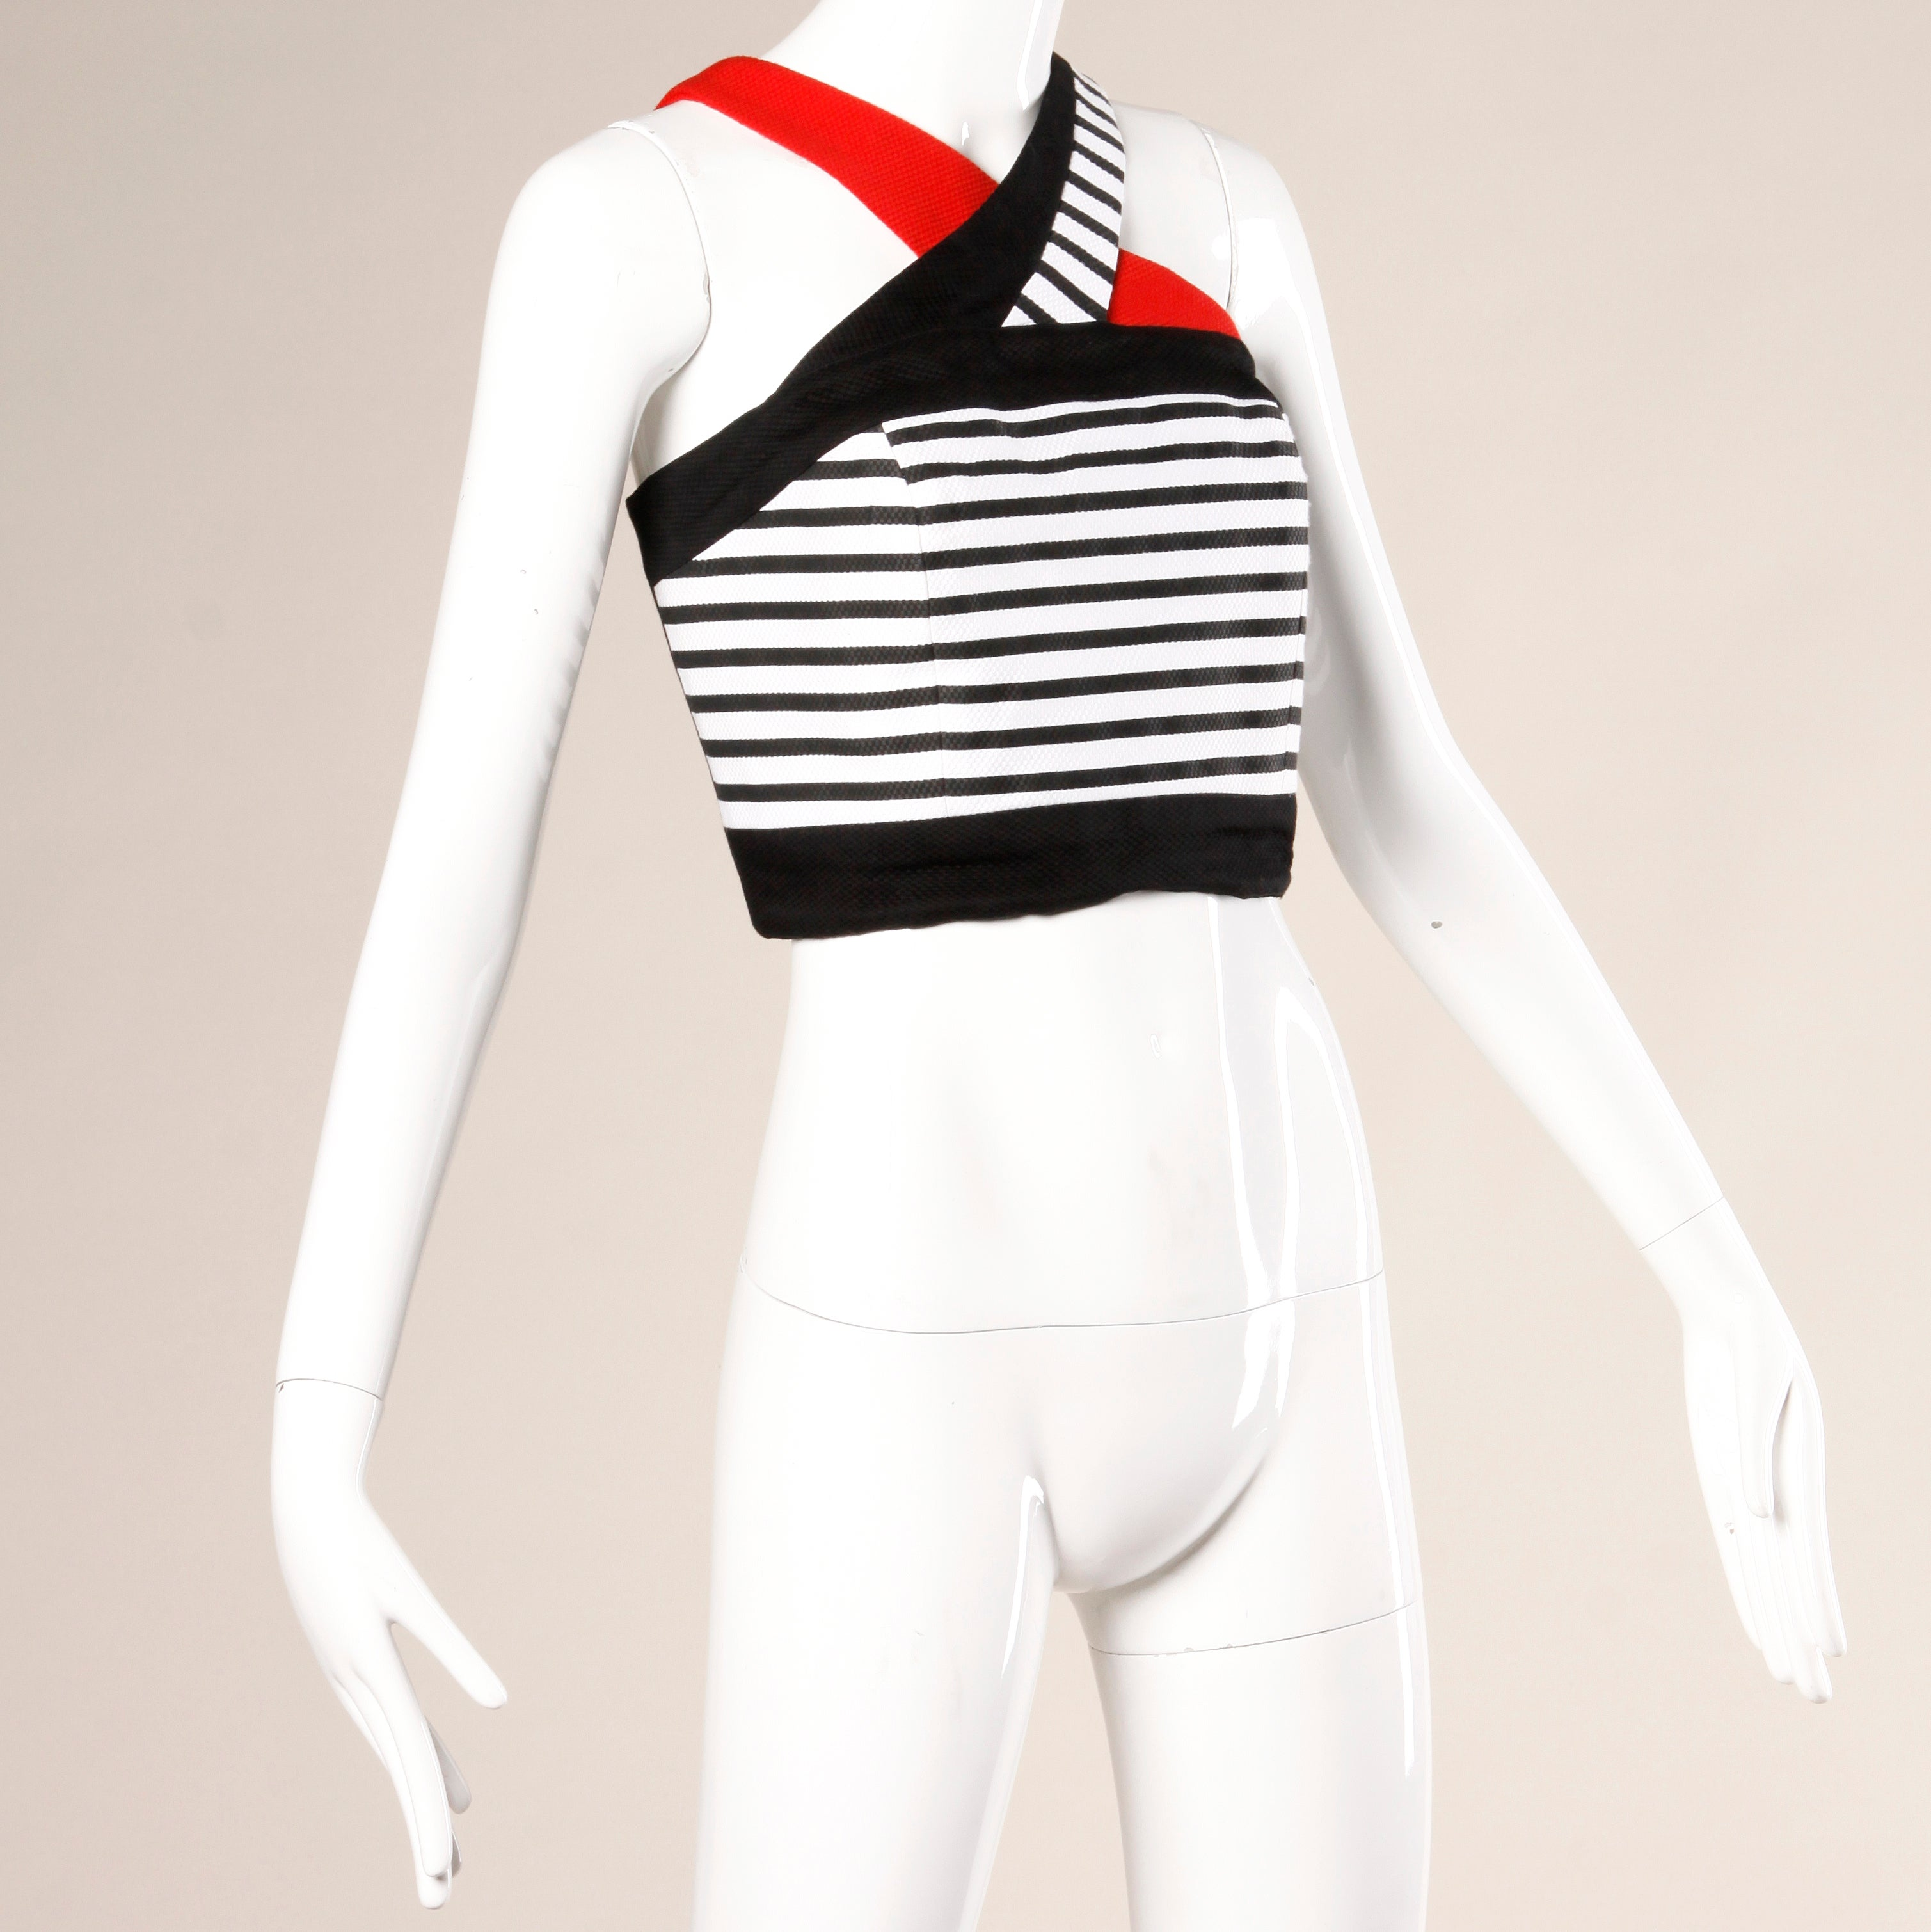 07c6aa1b3aadc Lillie Rubin Vintage Red White and Black Striped Cropped Halter Top For Sale  at 1stdibs